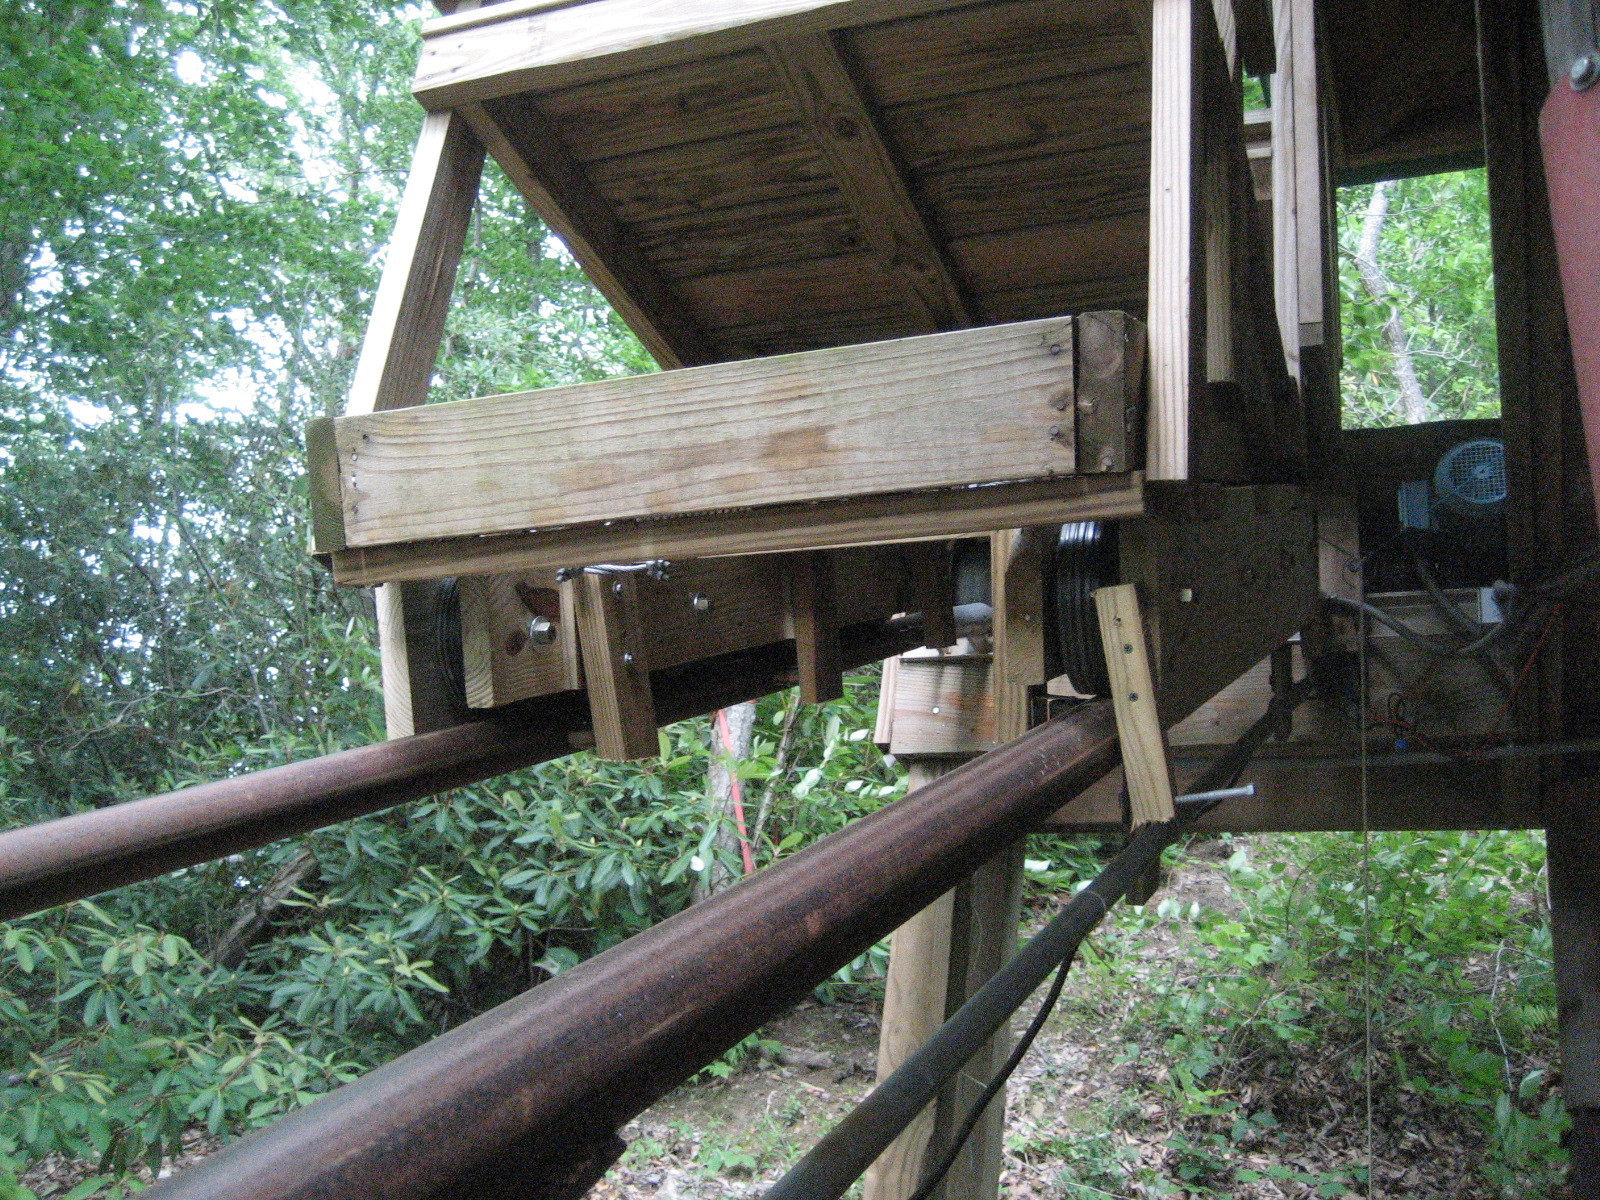 Home-Built Funicular (Motorized People-Mover System) | Make: